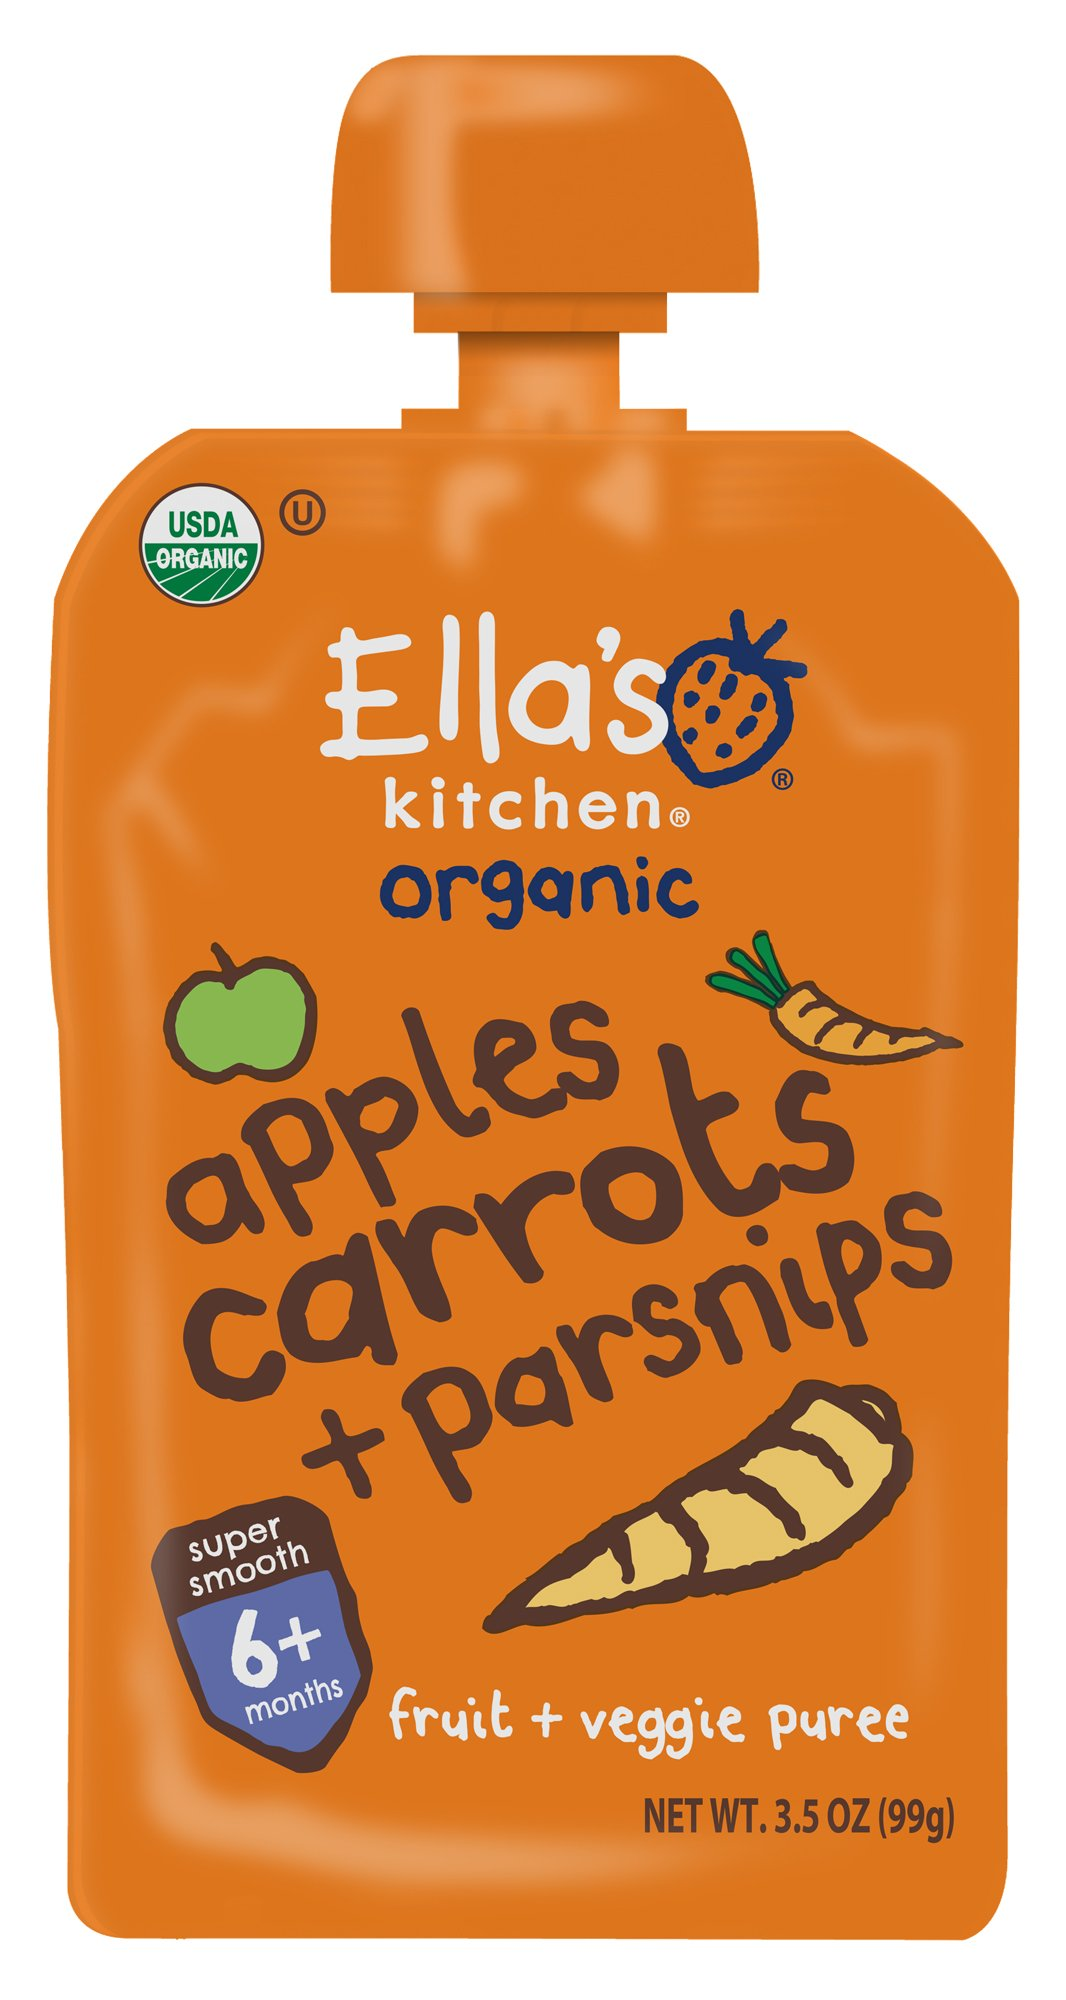 Ella's Kitchen Organic 6+ Months Baby Food, Apples Carrots and Parsnips, 3.5 oz. Pouch (Pack of 6)